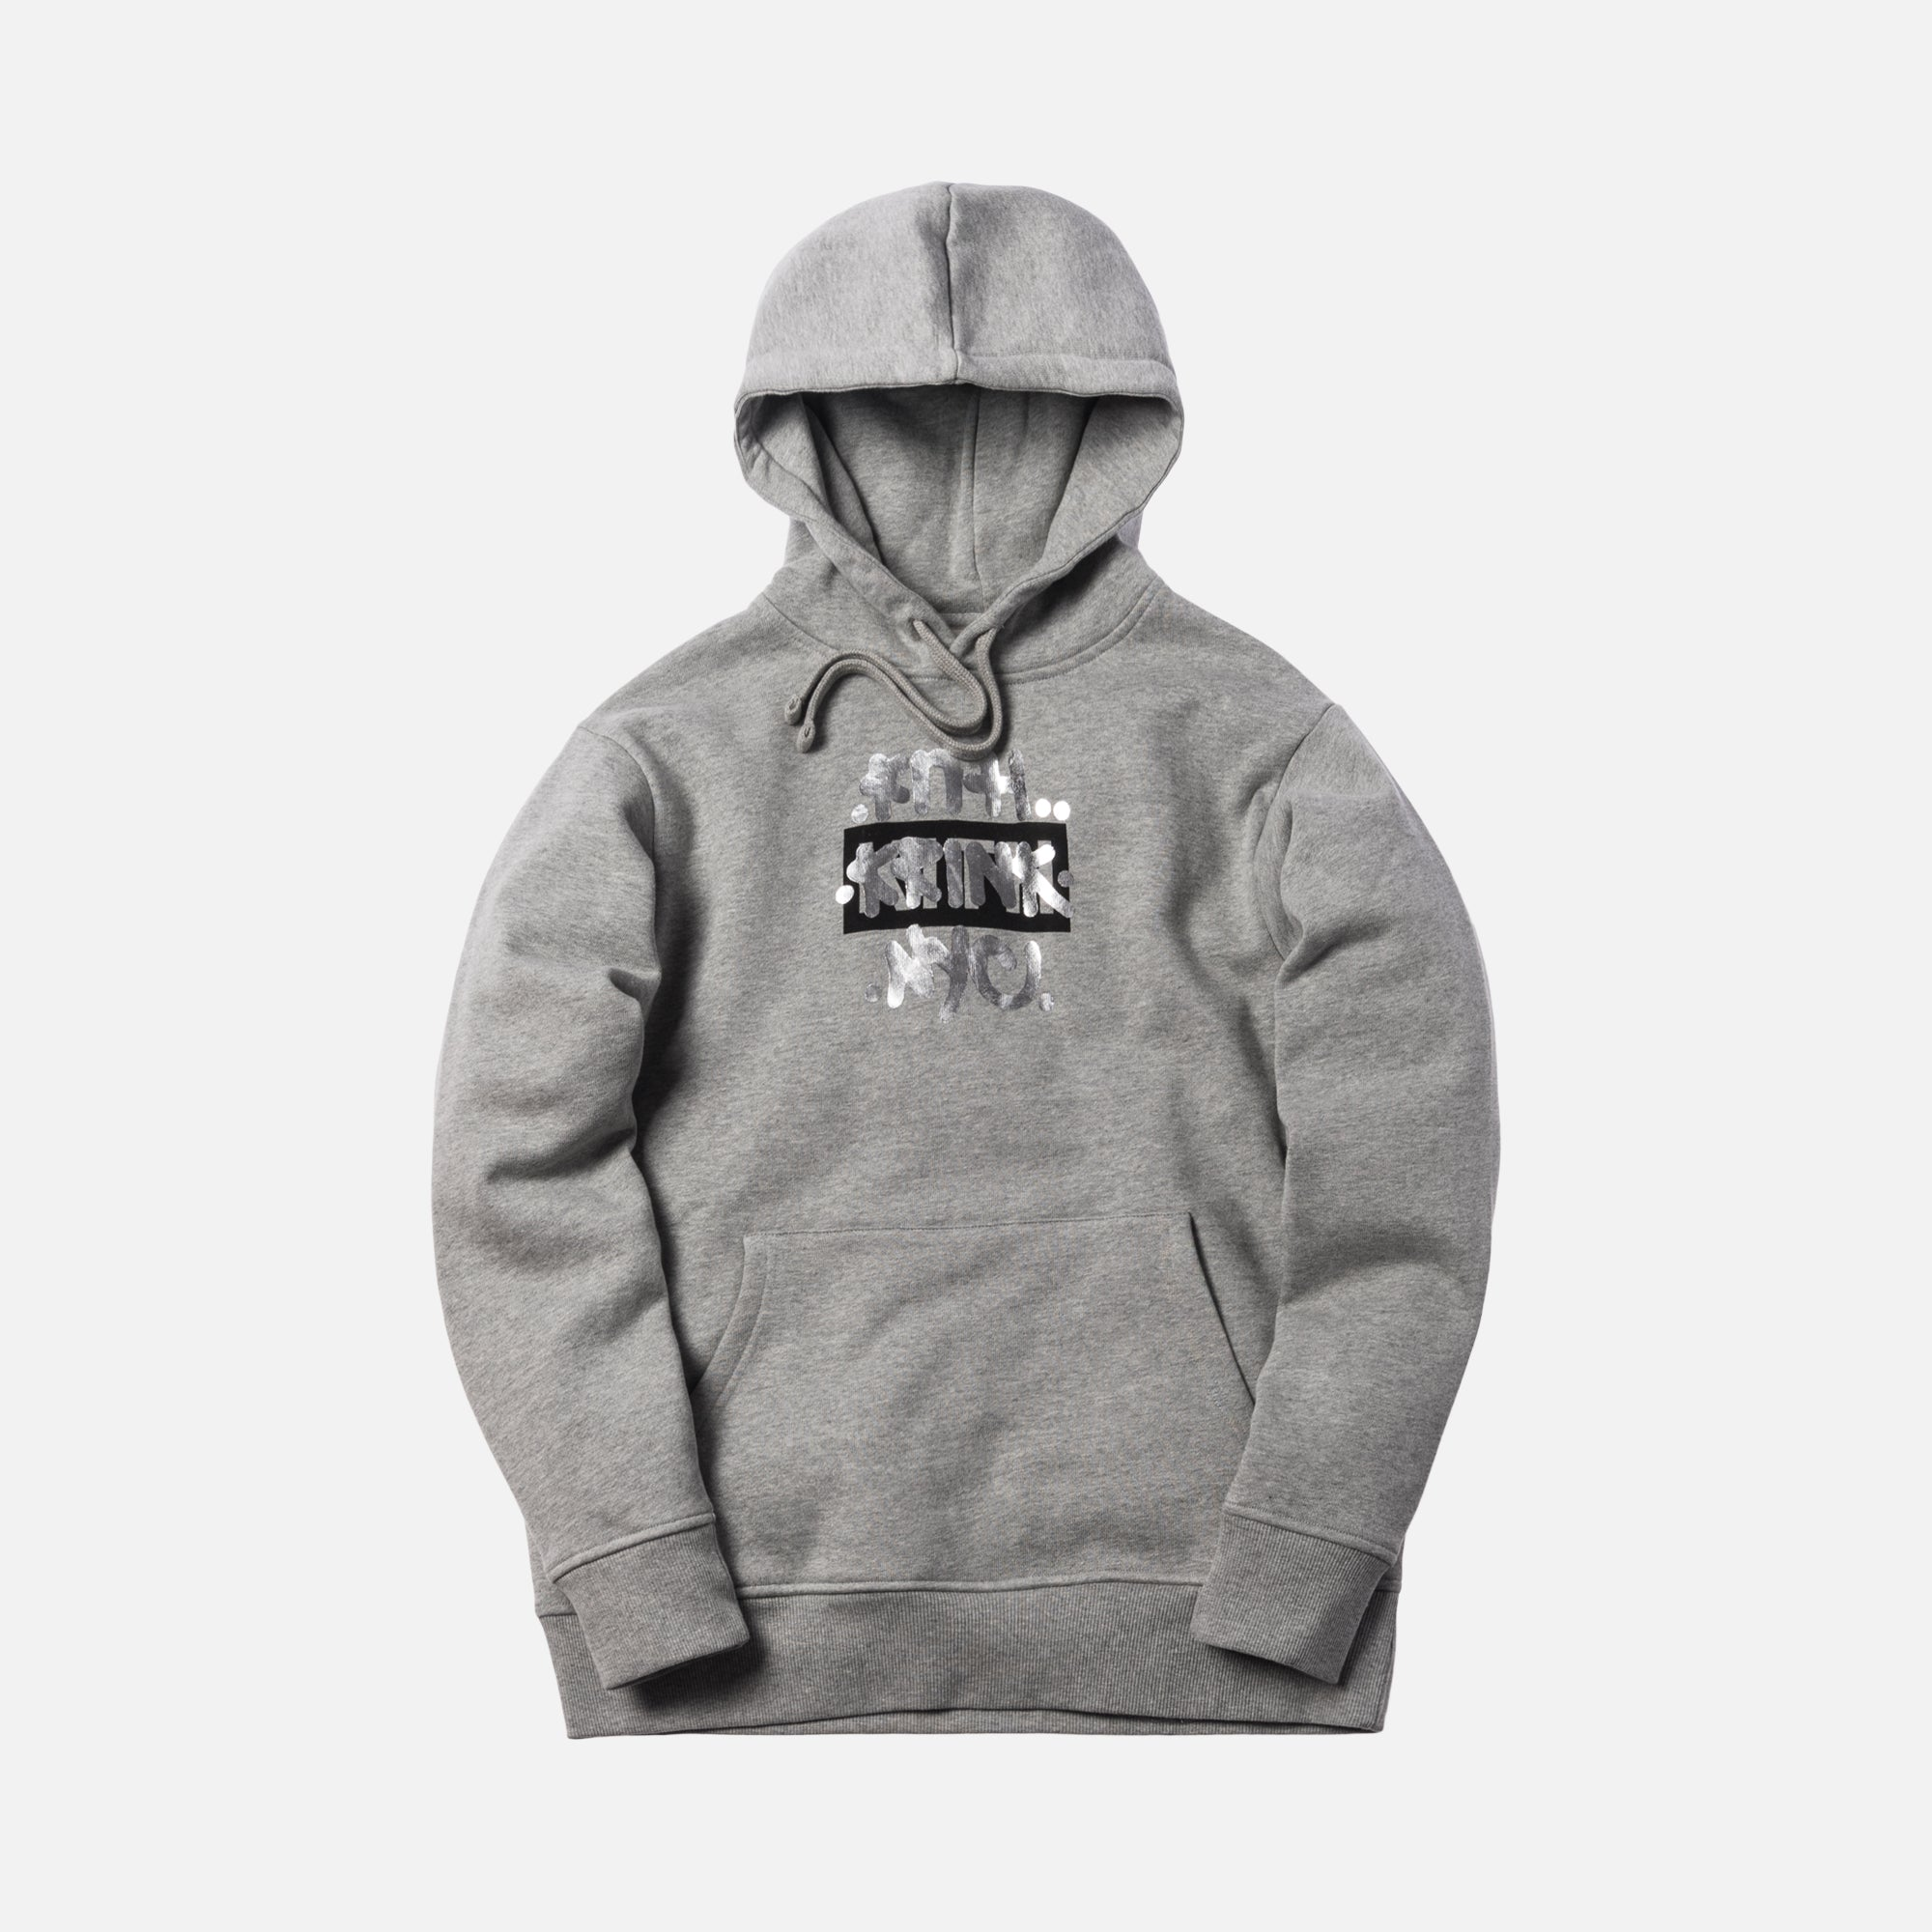 Kith x Krink Hoodie - Heather Grey